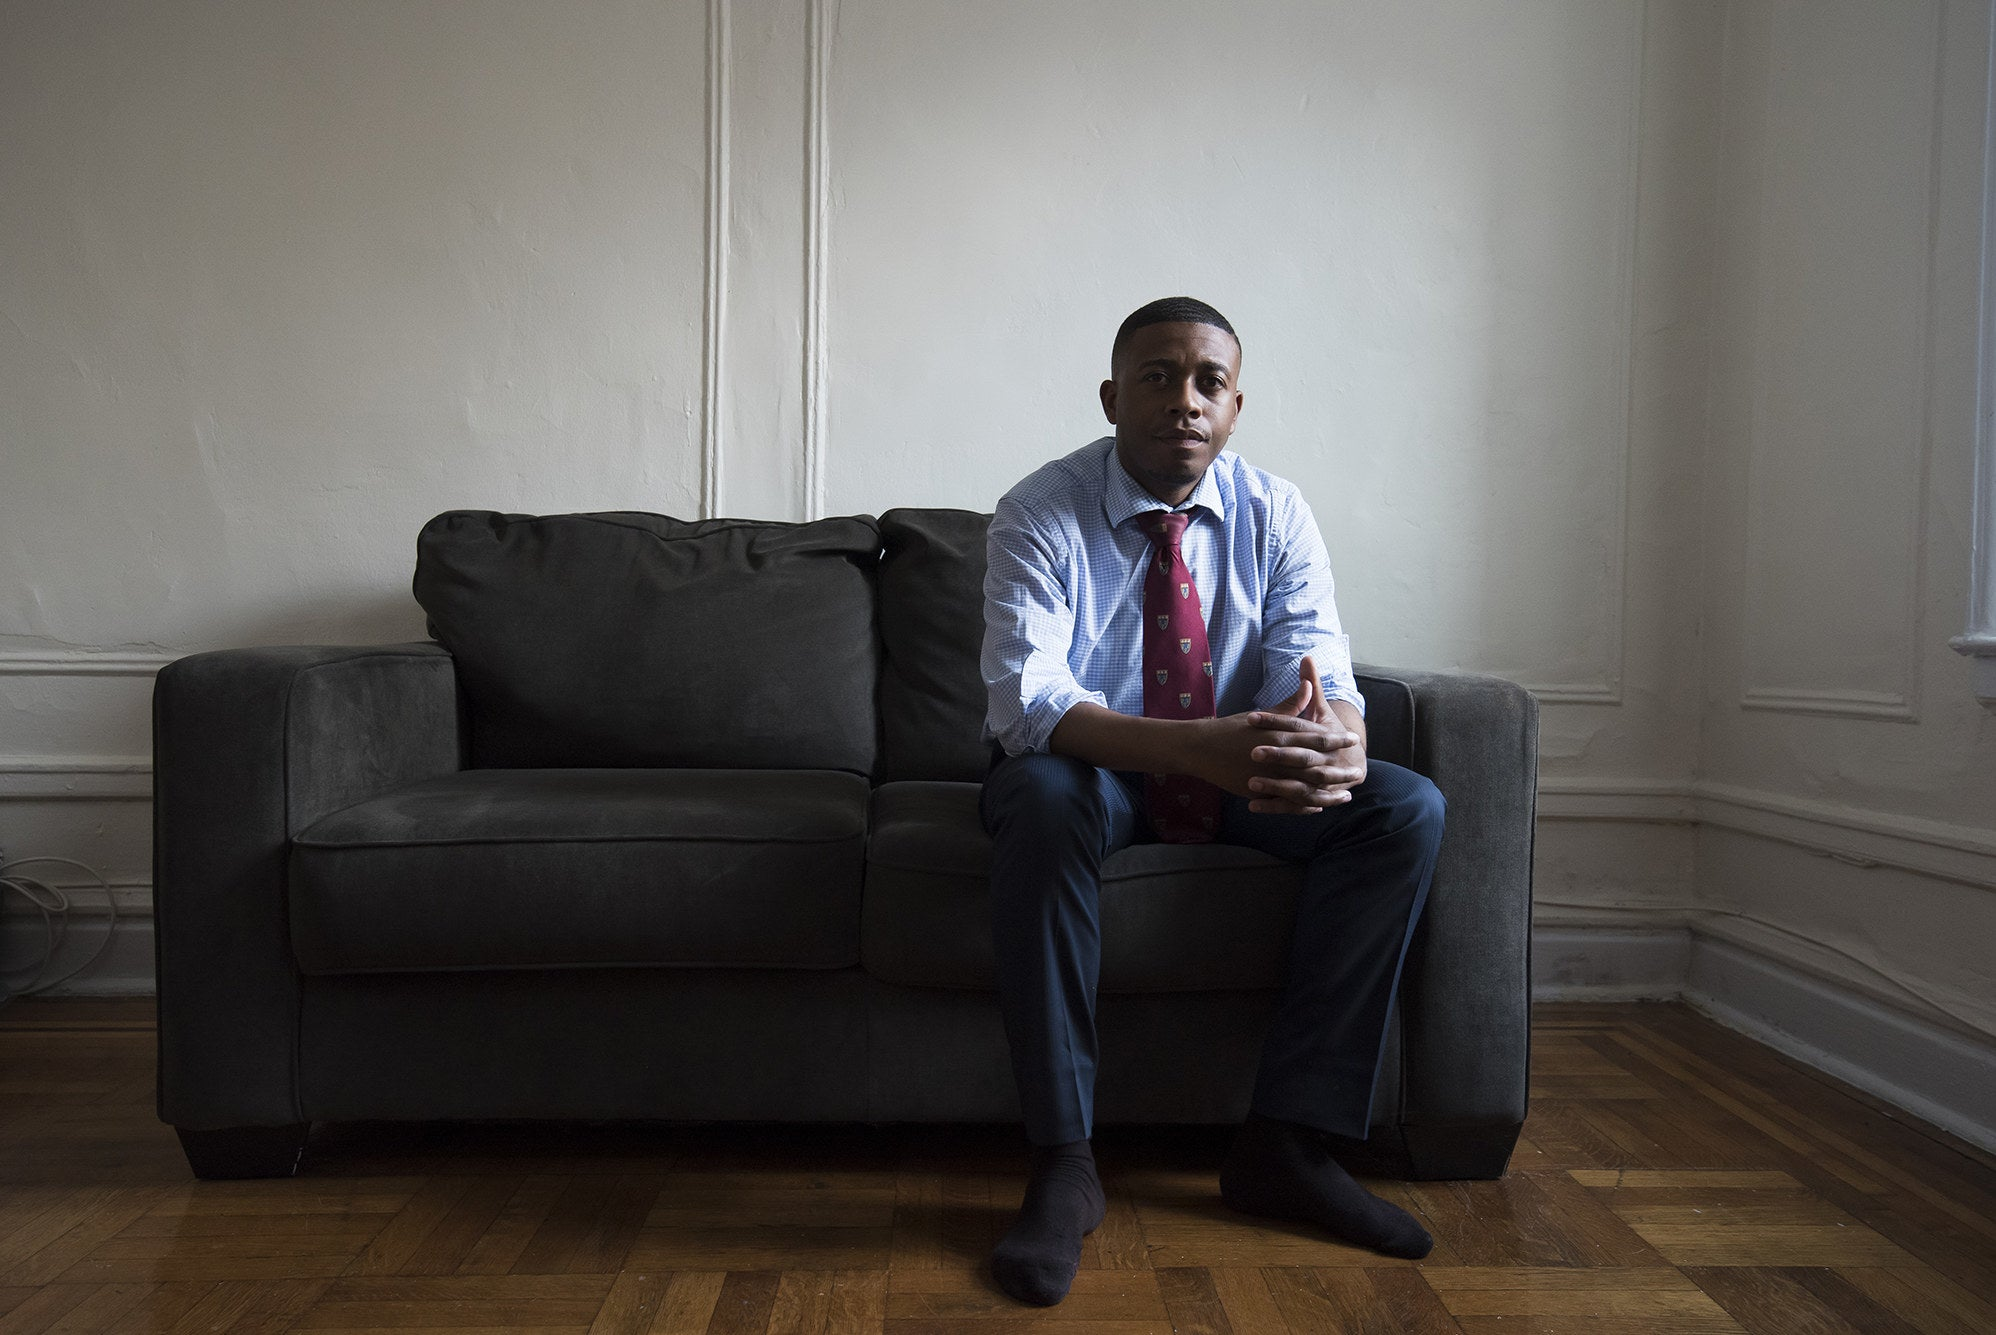 A man in a suit sits on a couch in an apartment